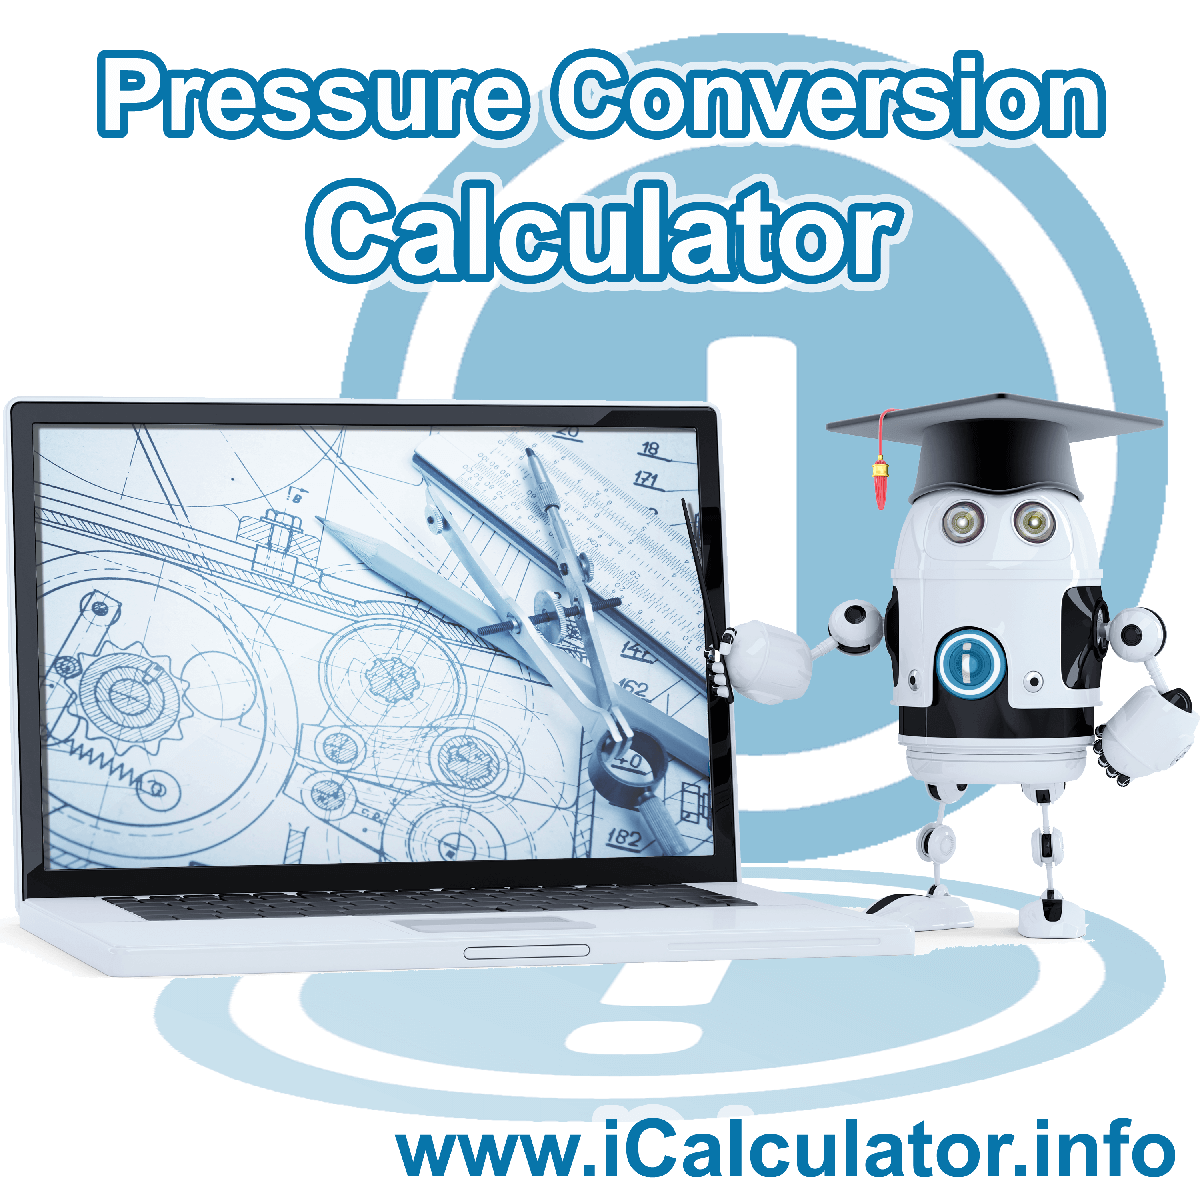 Pressure Conversion Calculator: This image shows Pressure Conversion formula and algorythms associated calculations used by the Pressure Conversion Calculator